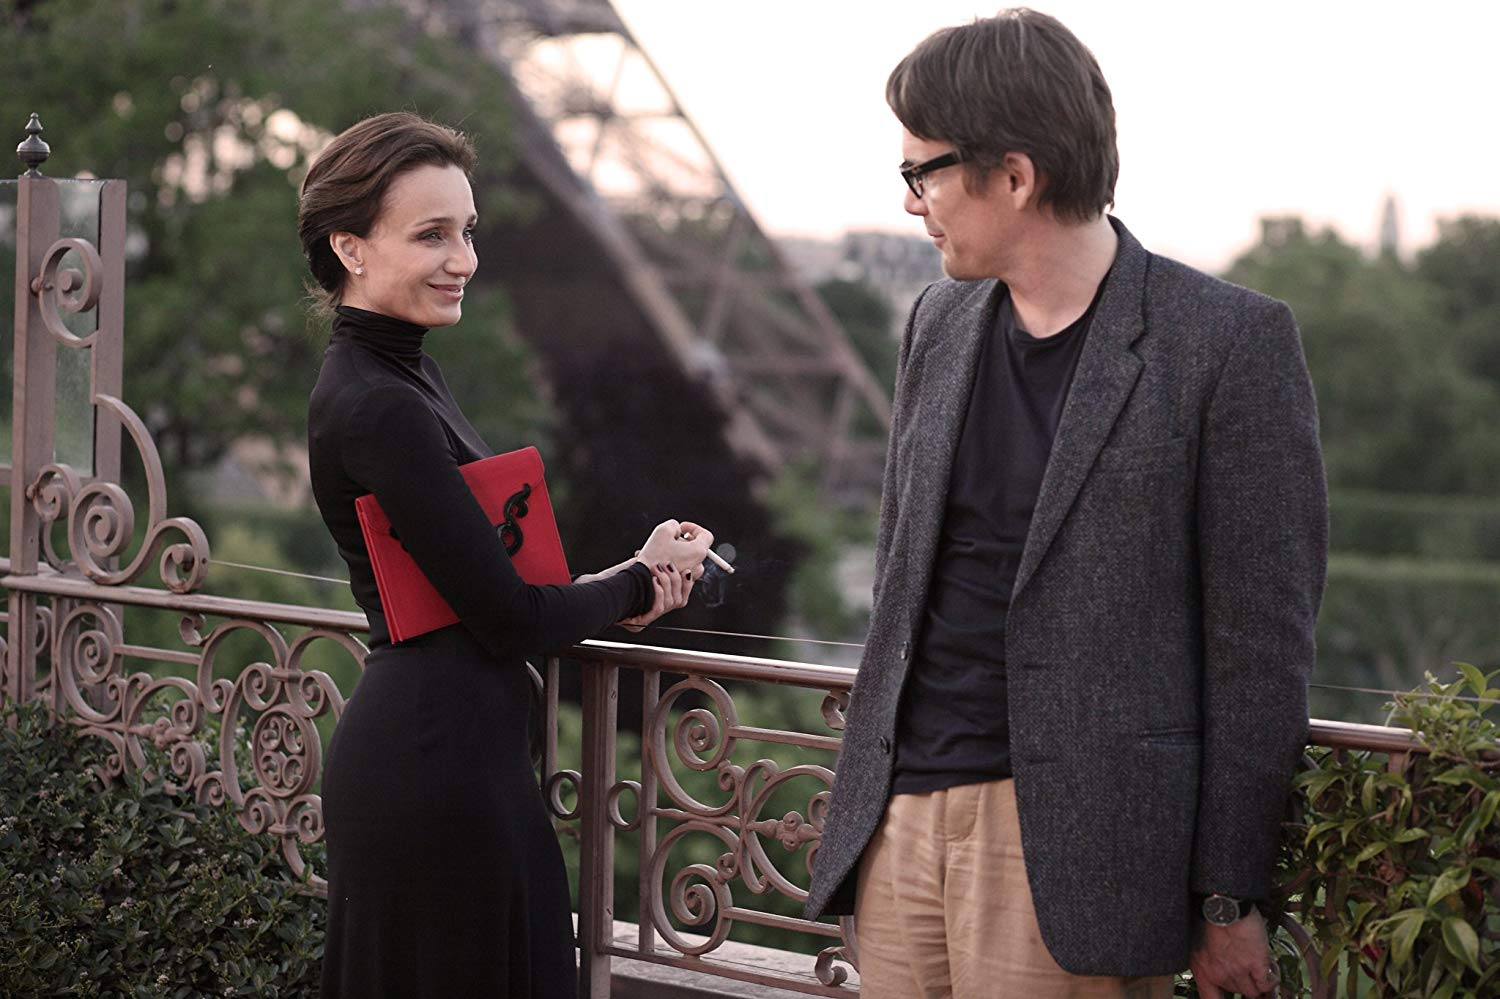 Ethan Hawke becomes involved with mysterious older woman Kristin Scott Thomas in The Woman in the Fifth (2011)